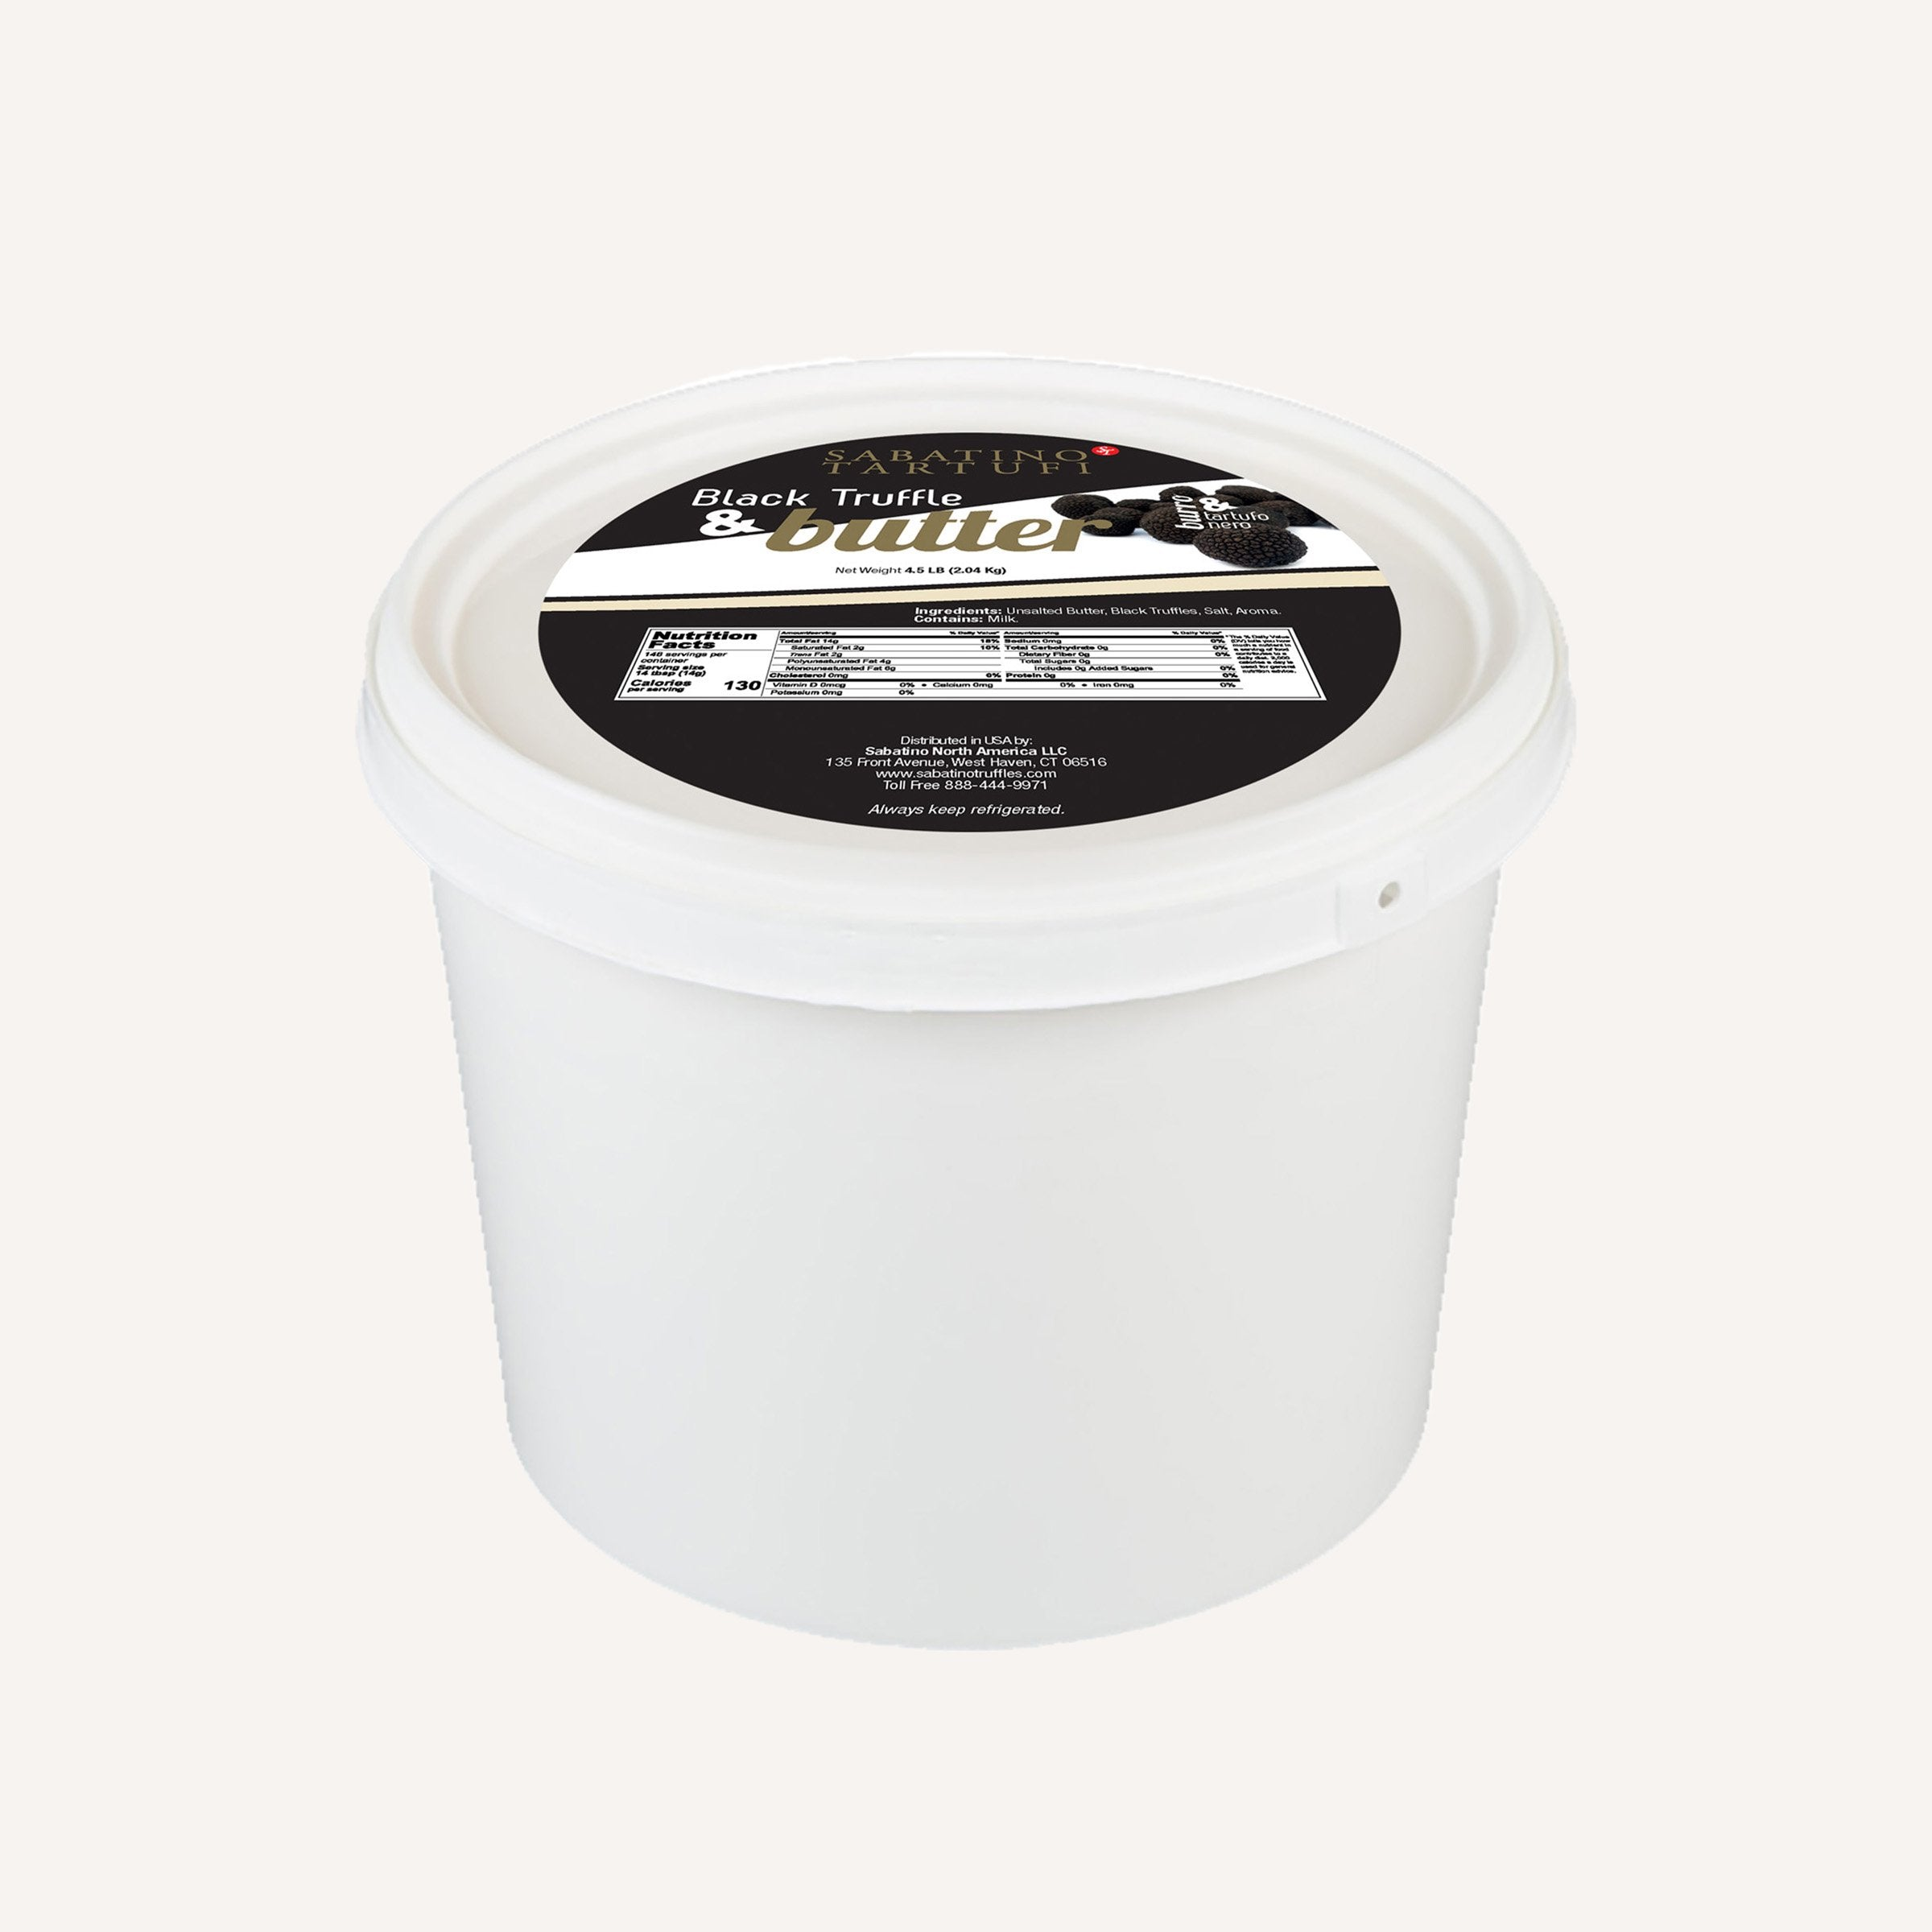 Black Truffle Butter - 4.5 lbs <br> Case Pack 6 Units